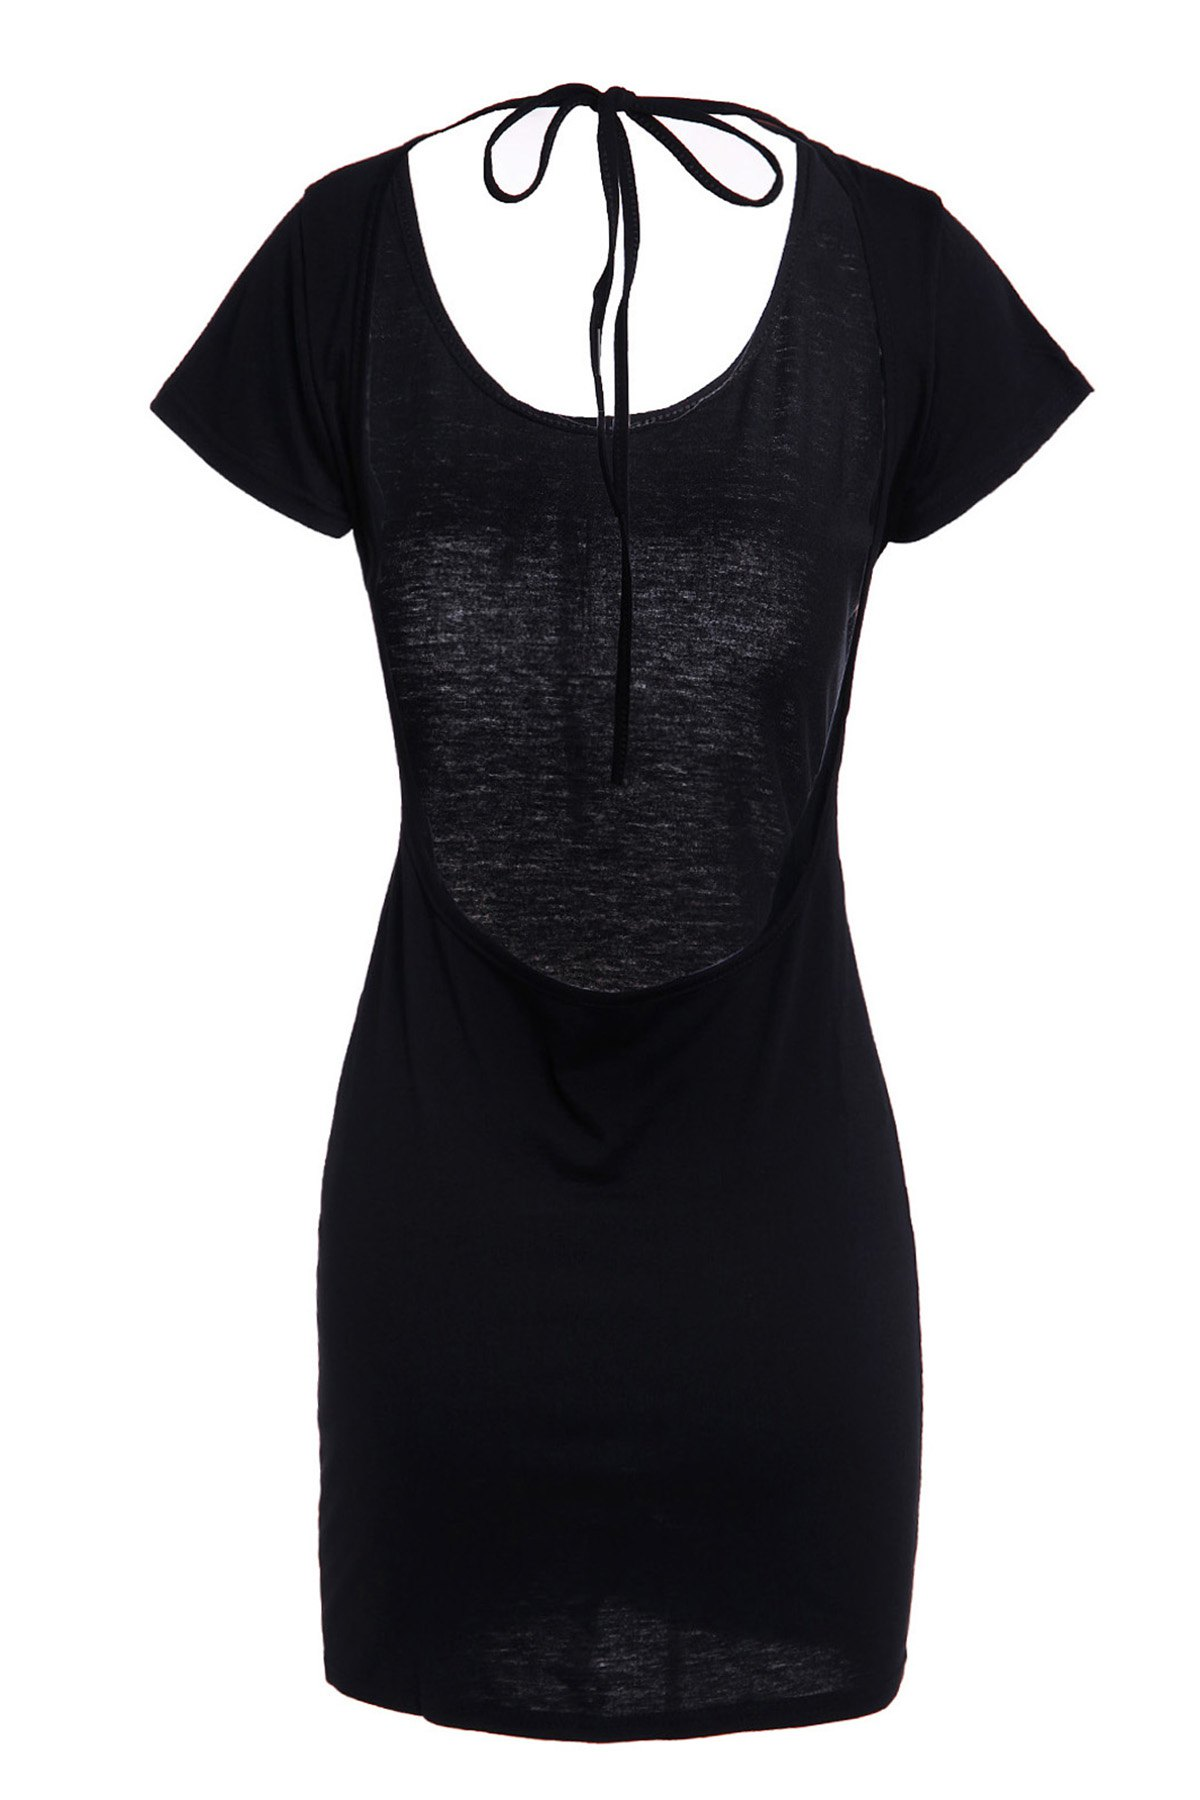 Sexy Women's Scoop Neck Short Sleeve Backless Mini Dress - BLACK M